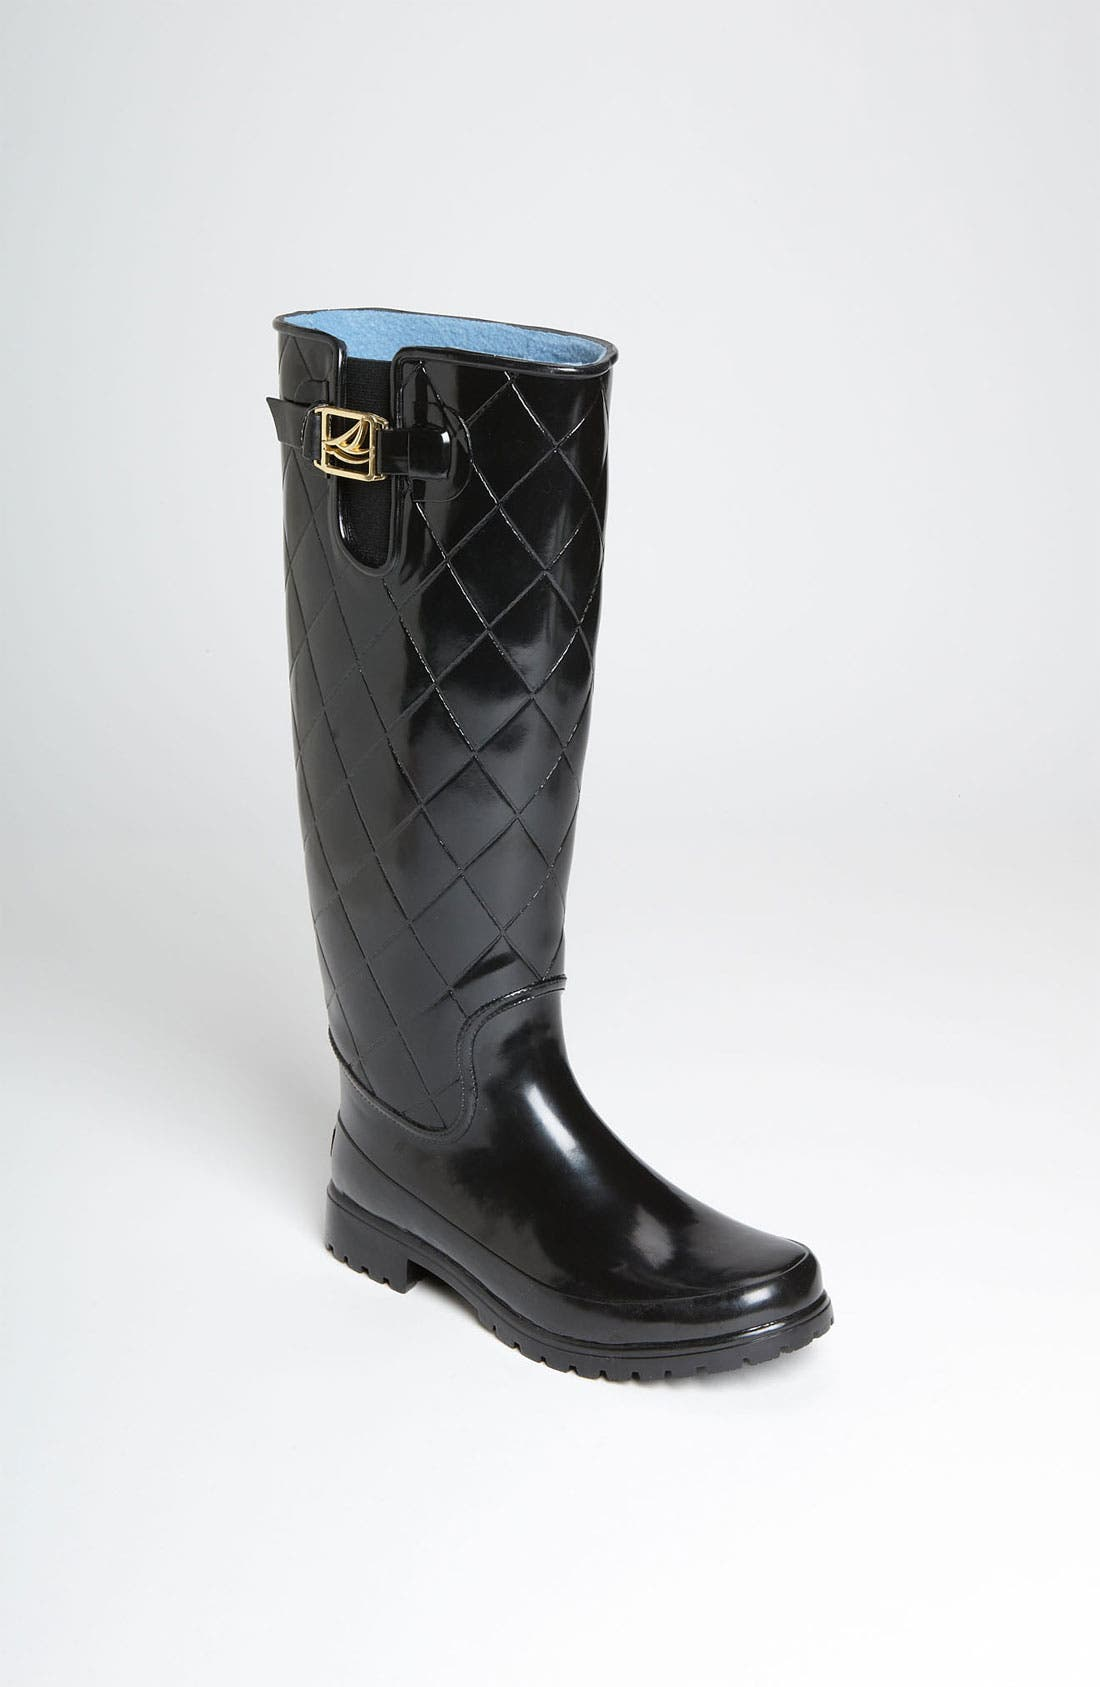 Main Image - Sperry Top-Sider® 'Pelican Too' Rain Boot (Women)(Special Purchase)